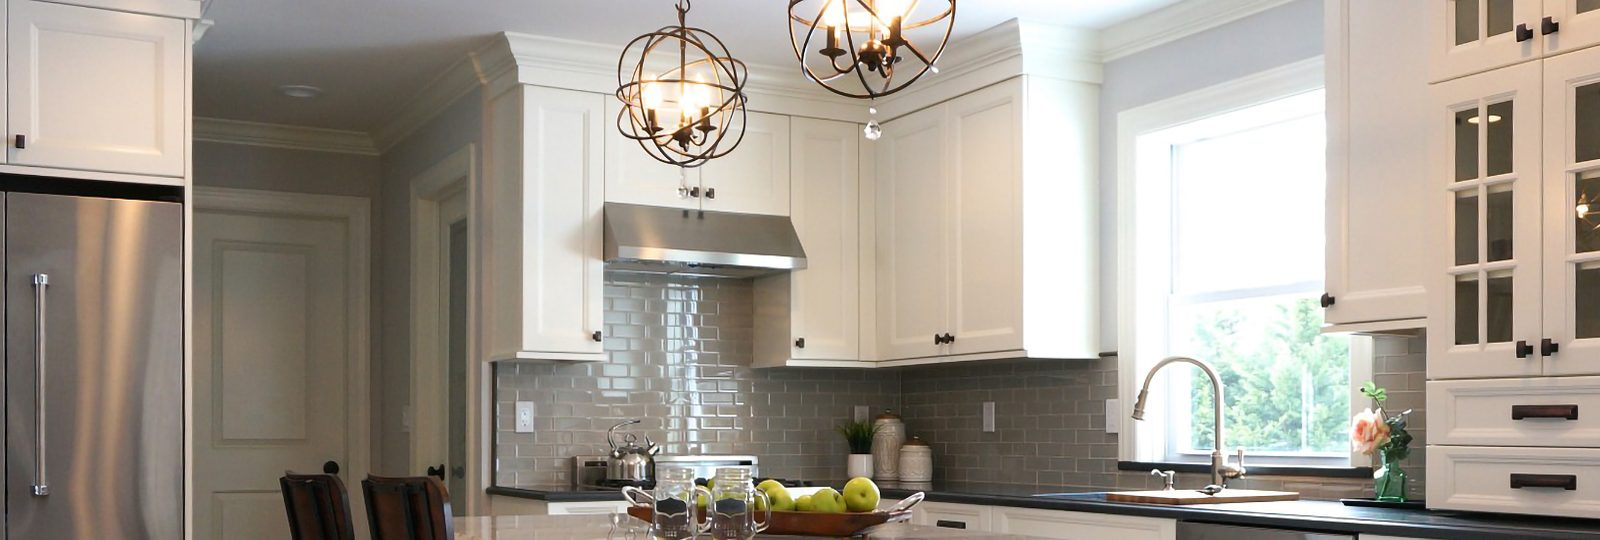 Kitchen Cabinets Styles, Colors, & Features | Heartland ...